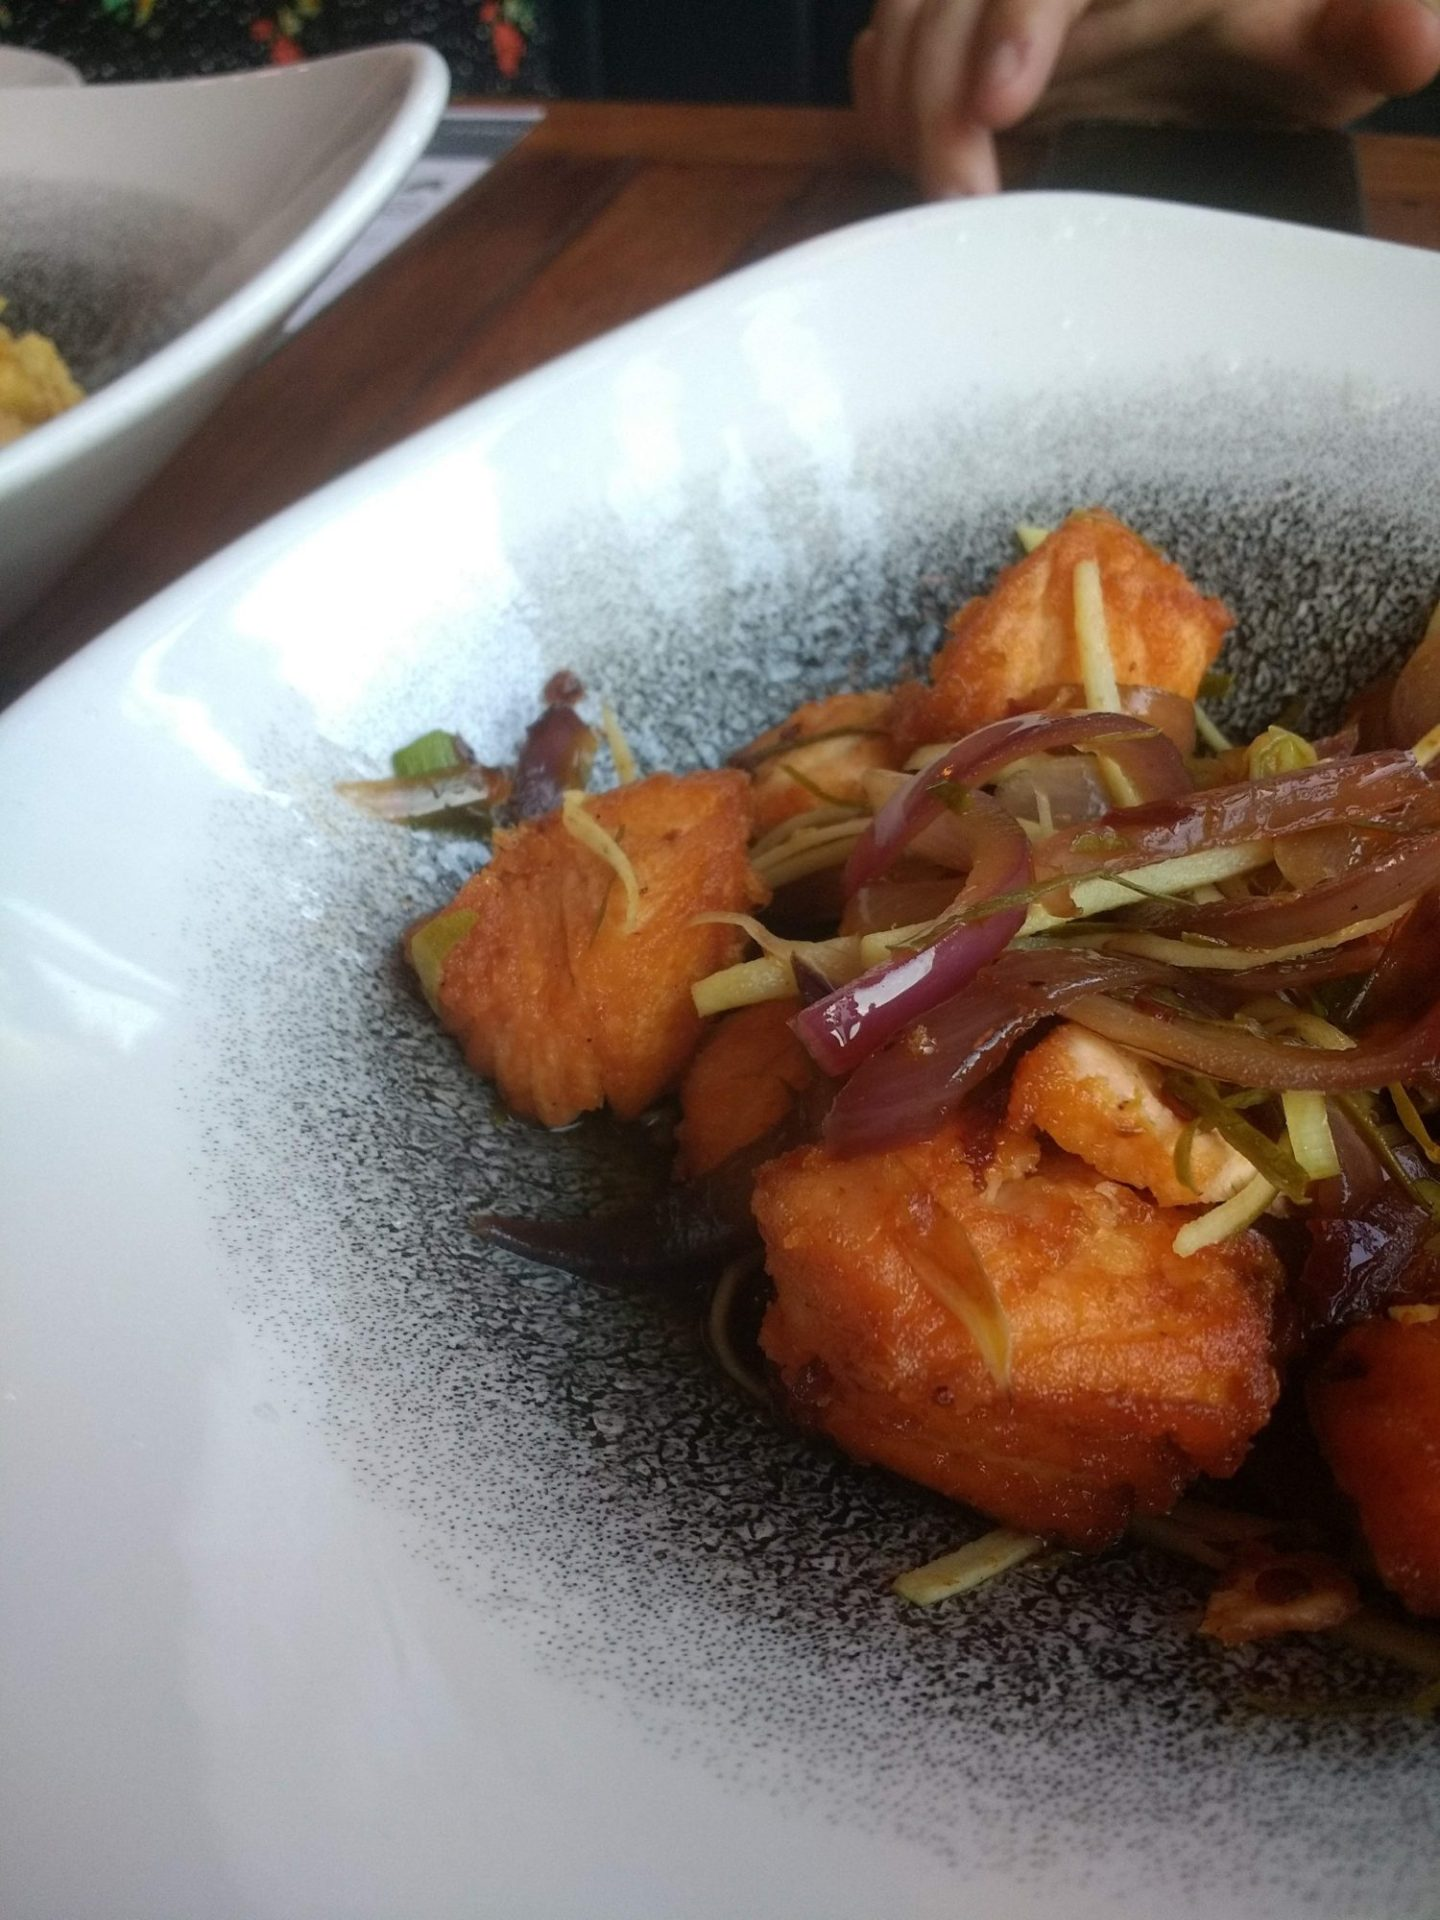 Thai Salmon Salad at Chilli Banana Liverpool | Gluten Free Thai Food in Liverpool at Chilli Banana